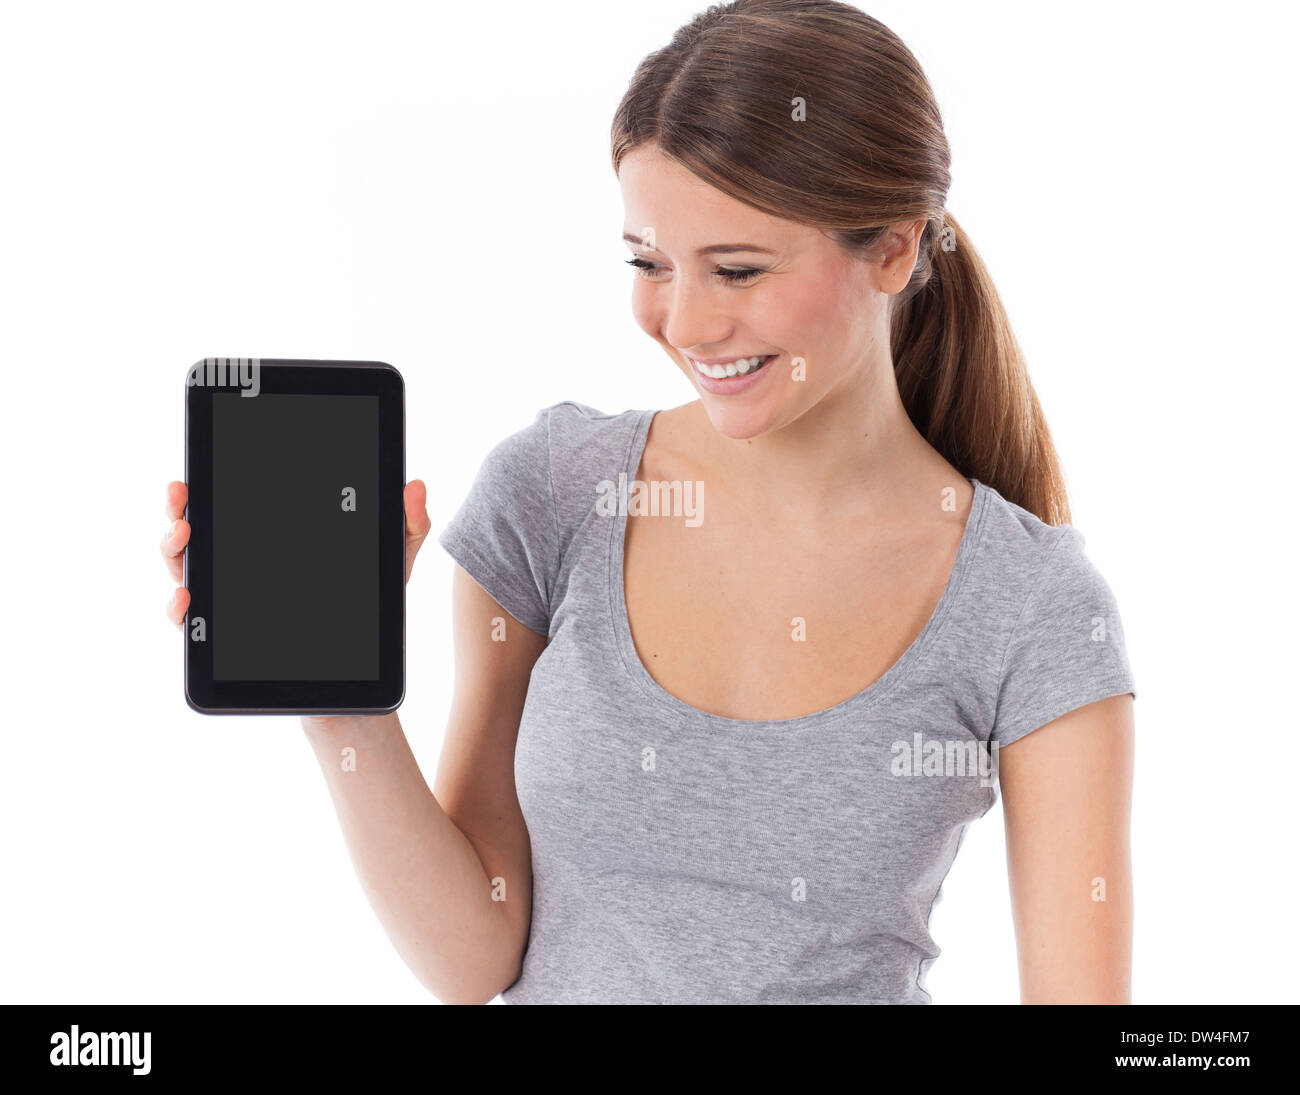 Cheerful woman presenting a touchpad, communication concept - Stock Image